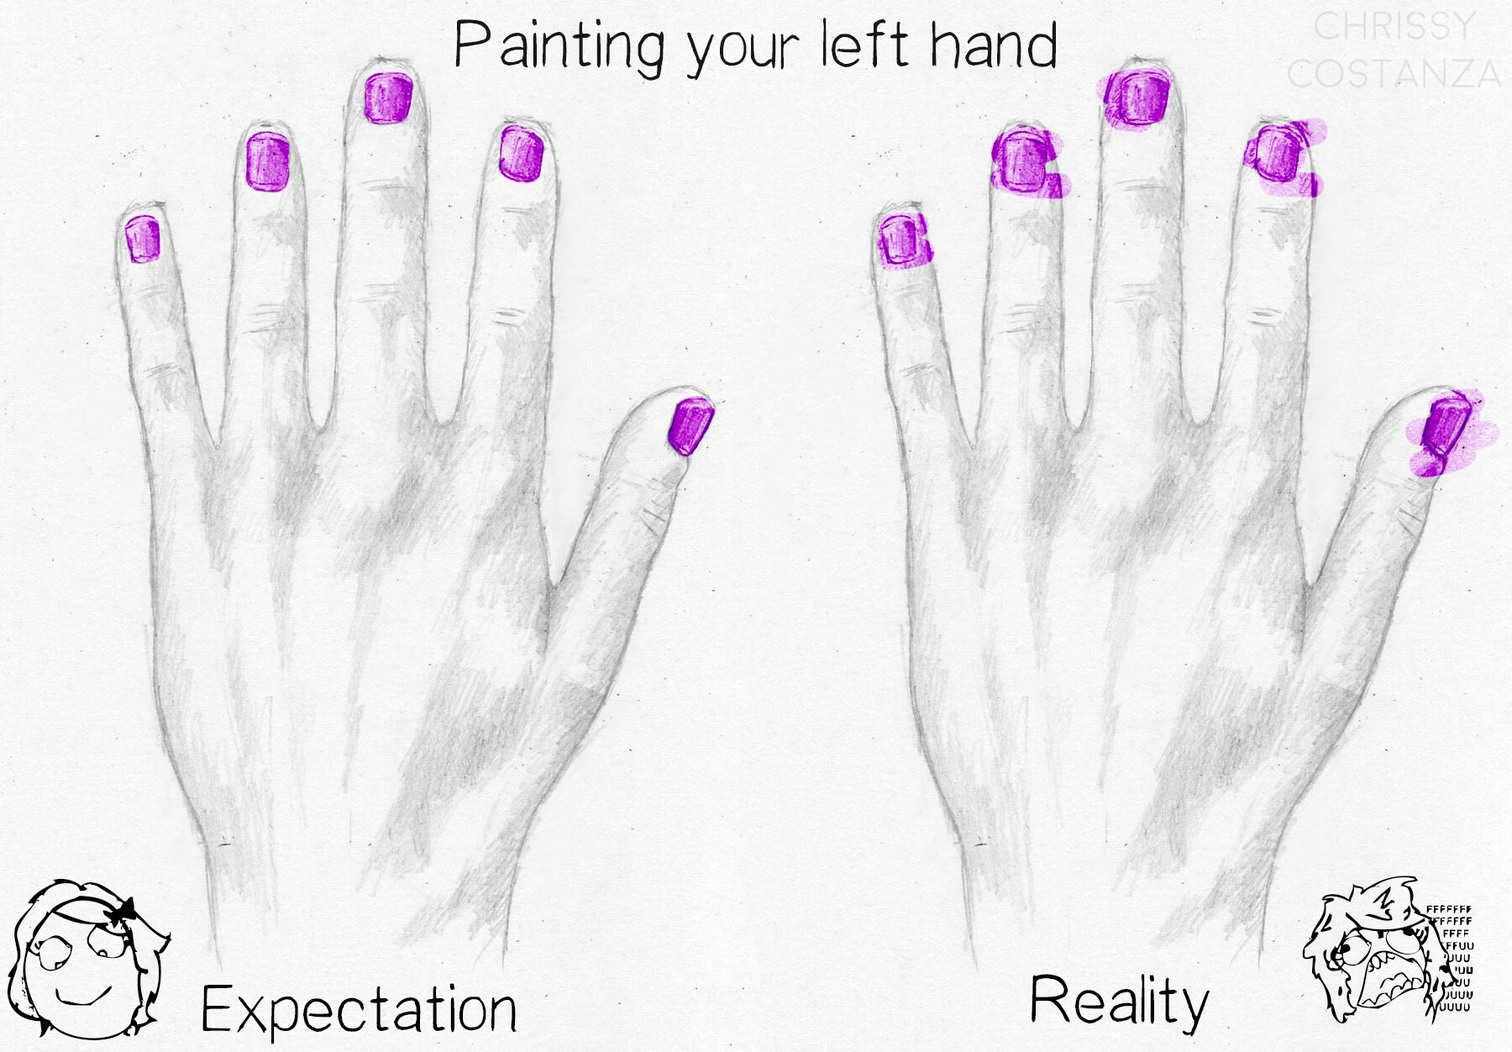 It's so hard to paint your nails on the right hand :( - meme